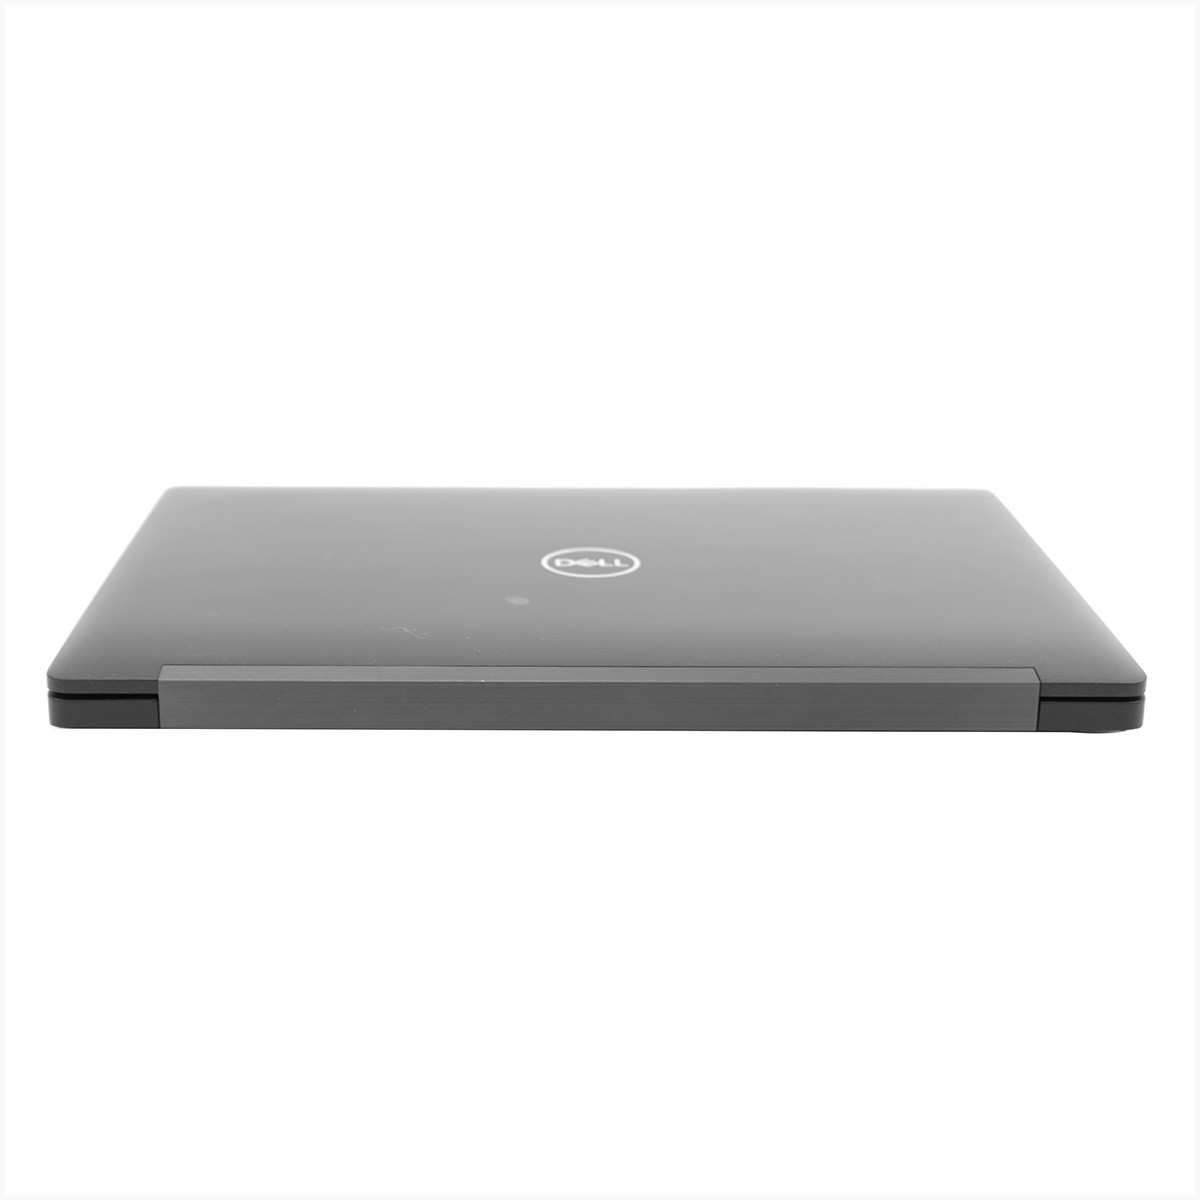 Notebook Dell E7390 i5 8gb 240gb Ssd M.2 - Usado